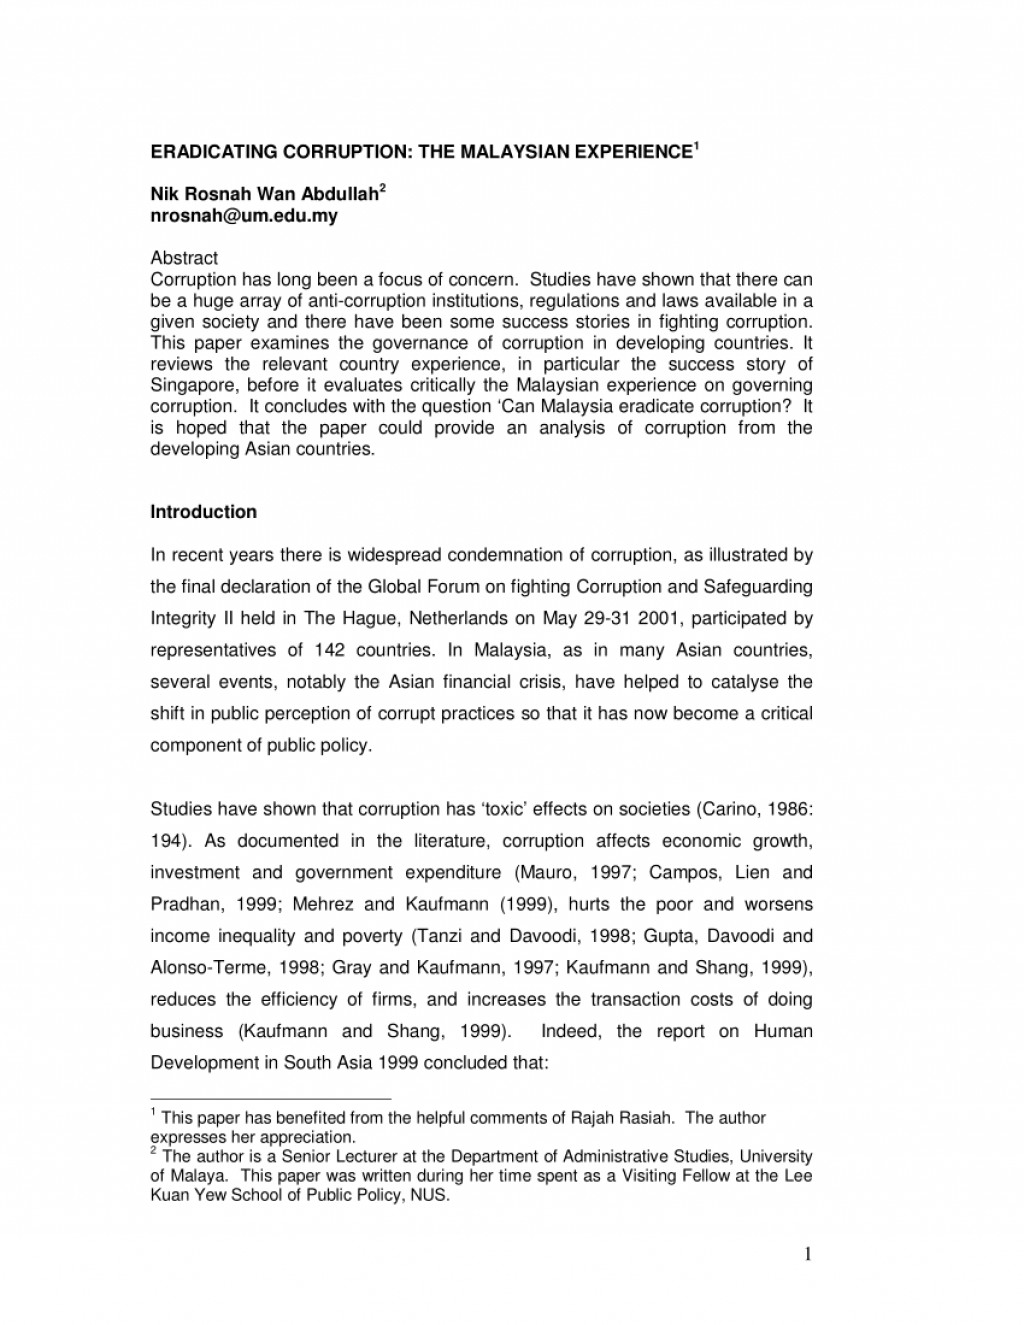 002 How To Eradicate Corruption Essay Largepreview Unique On In Nigeria Tamil Large